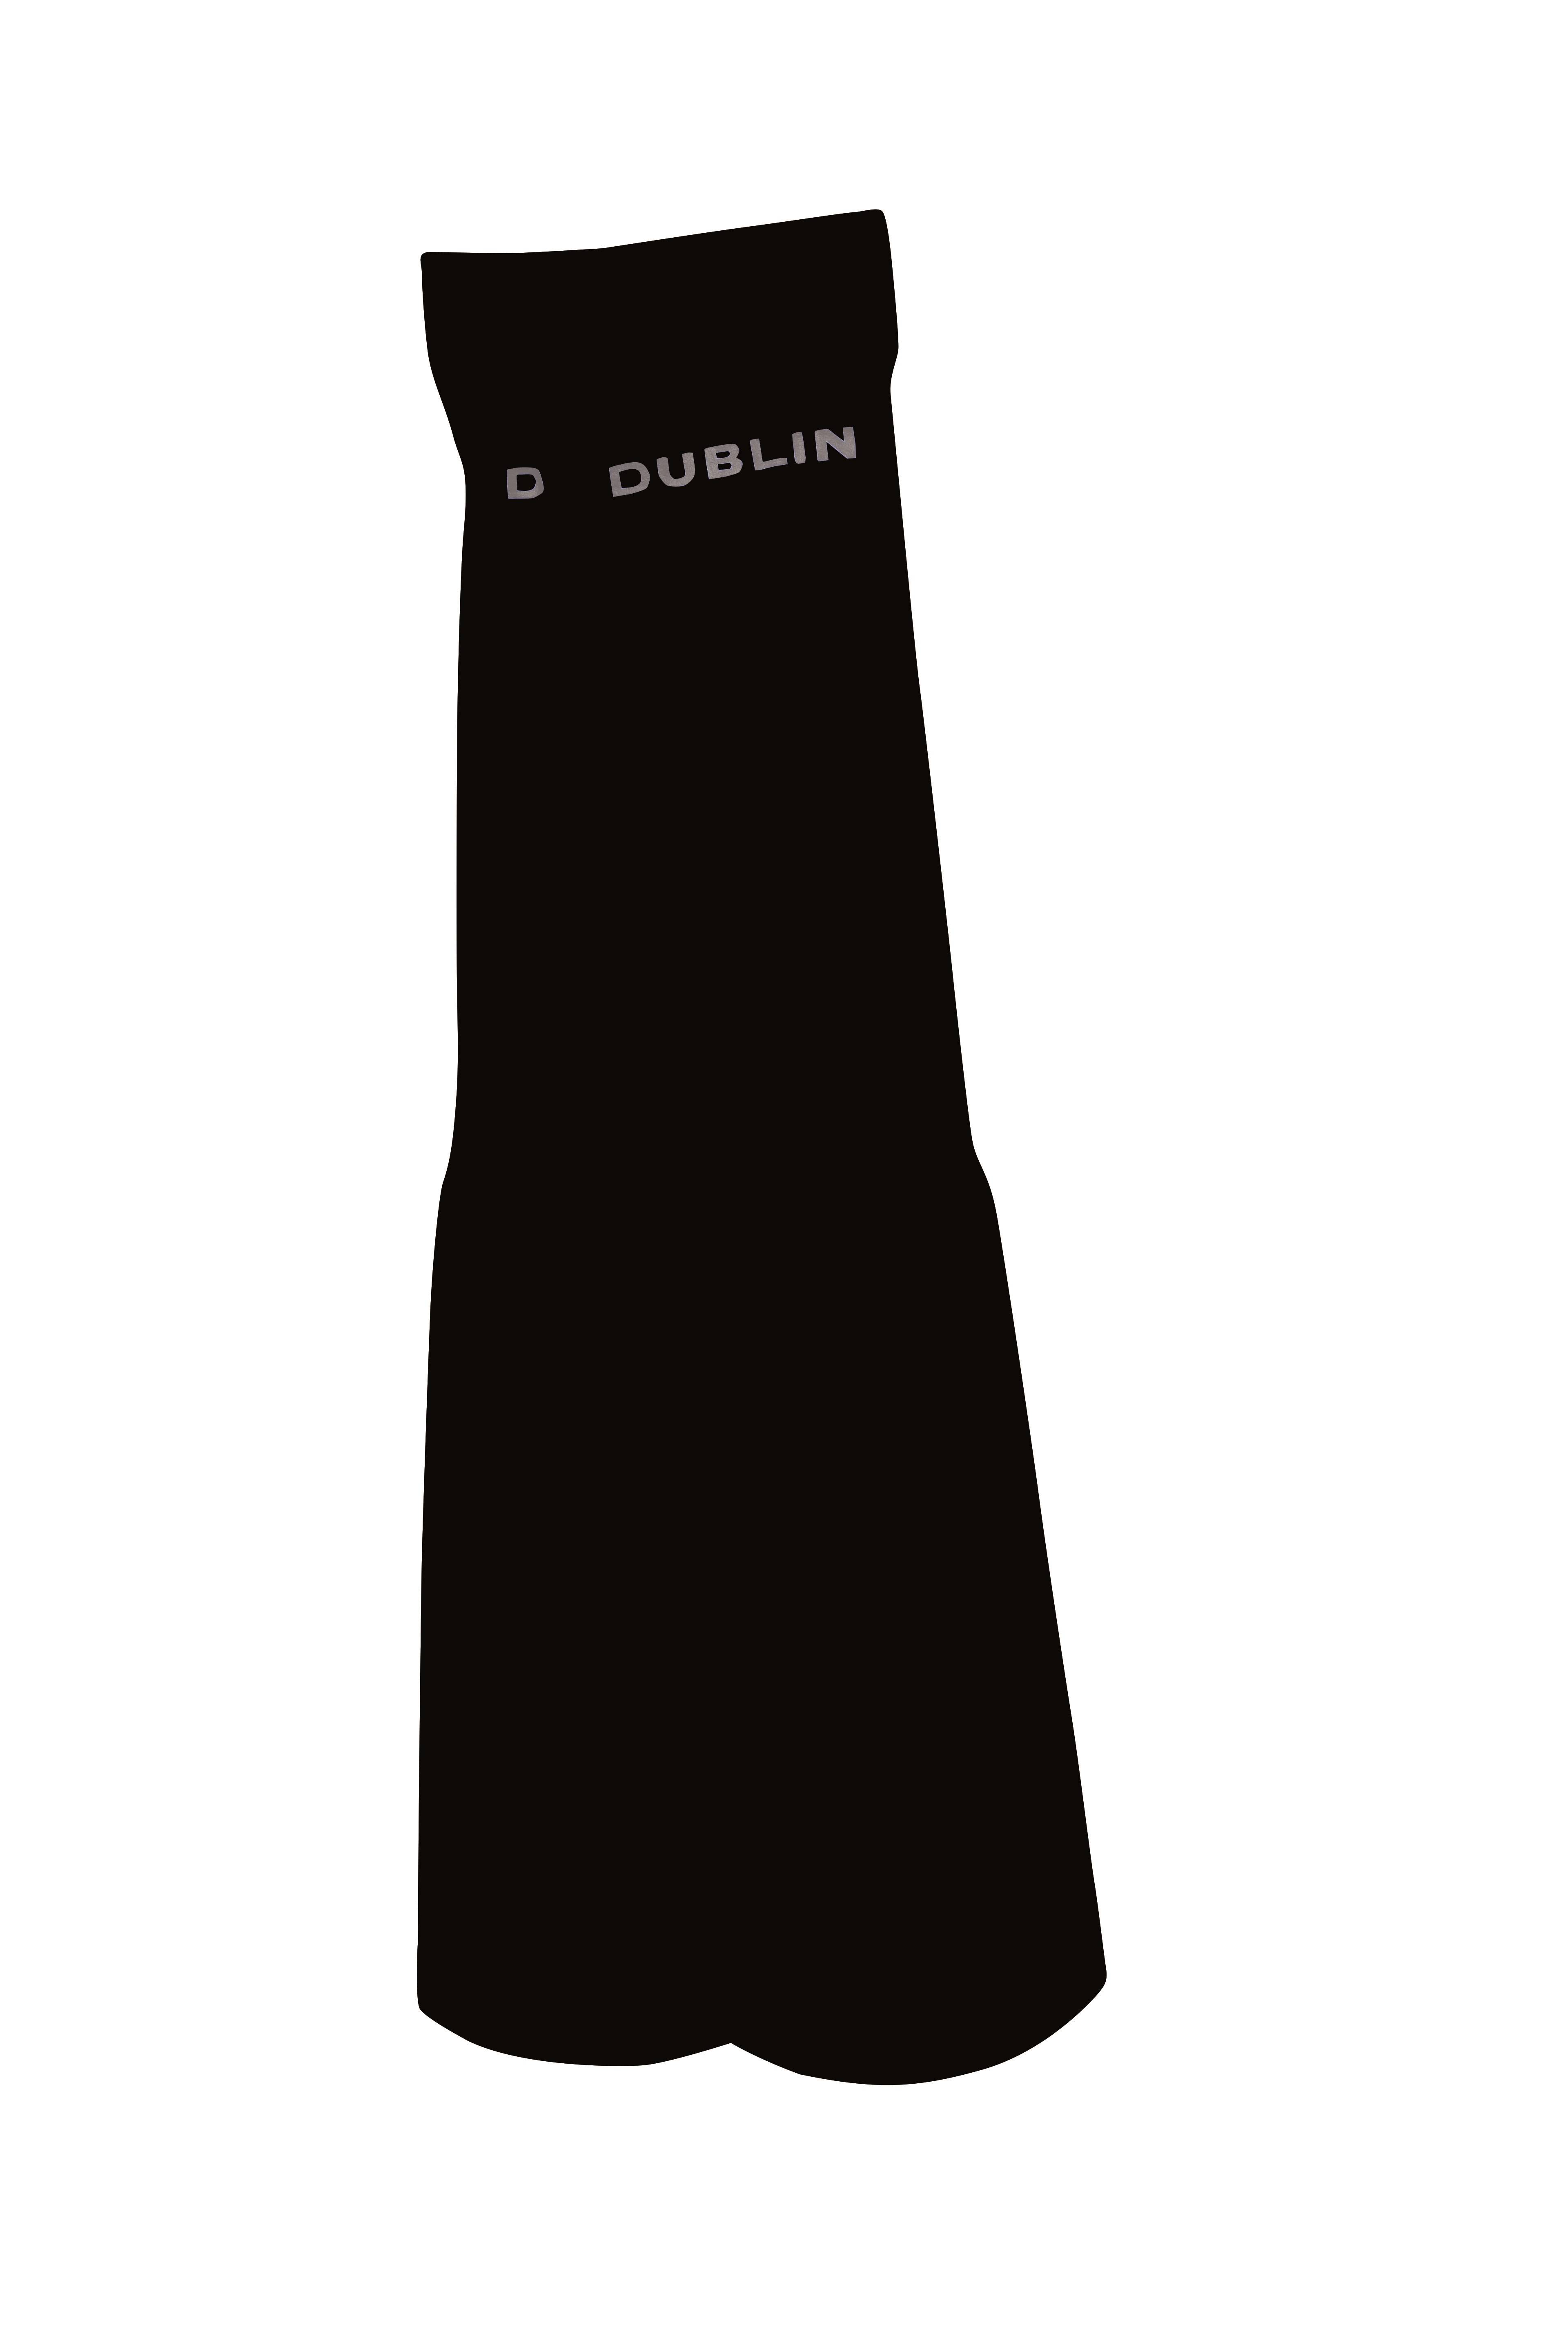 Dublin Stocking Socks - Ladies